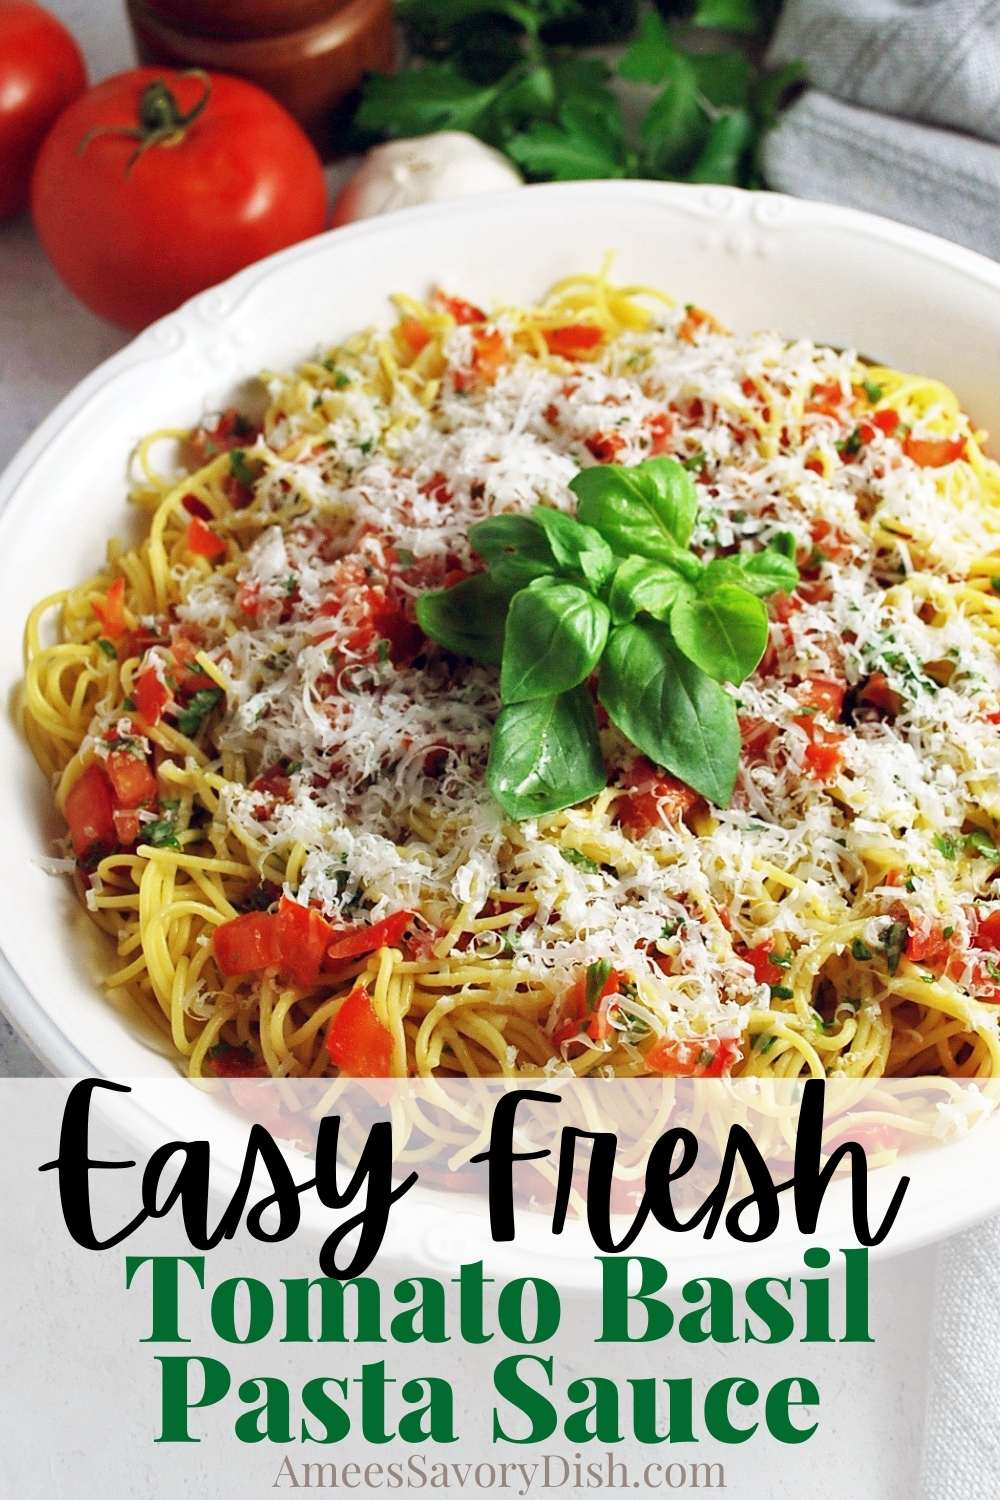 This delicious fresh tomato basil pasta sauce uses fresh garden tomatoes, olive oil, lemon zest, and herbs for a light summer pasta dish. via @Ameessavorydish